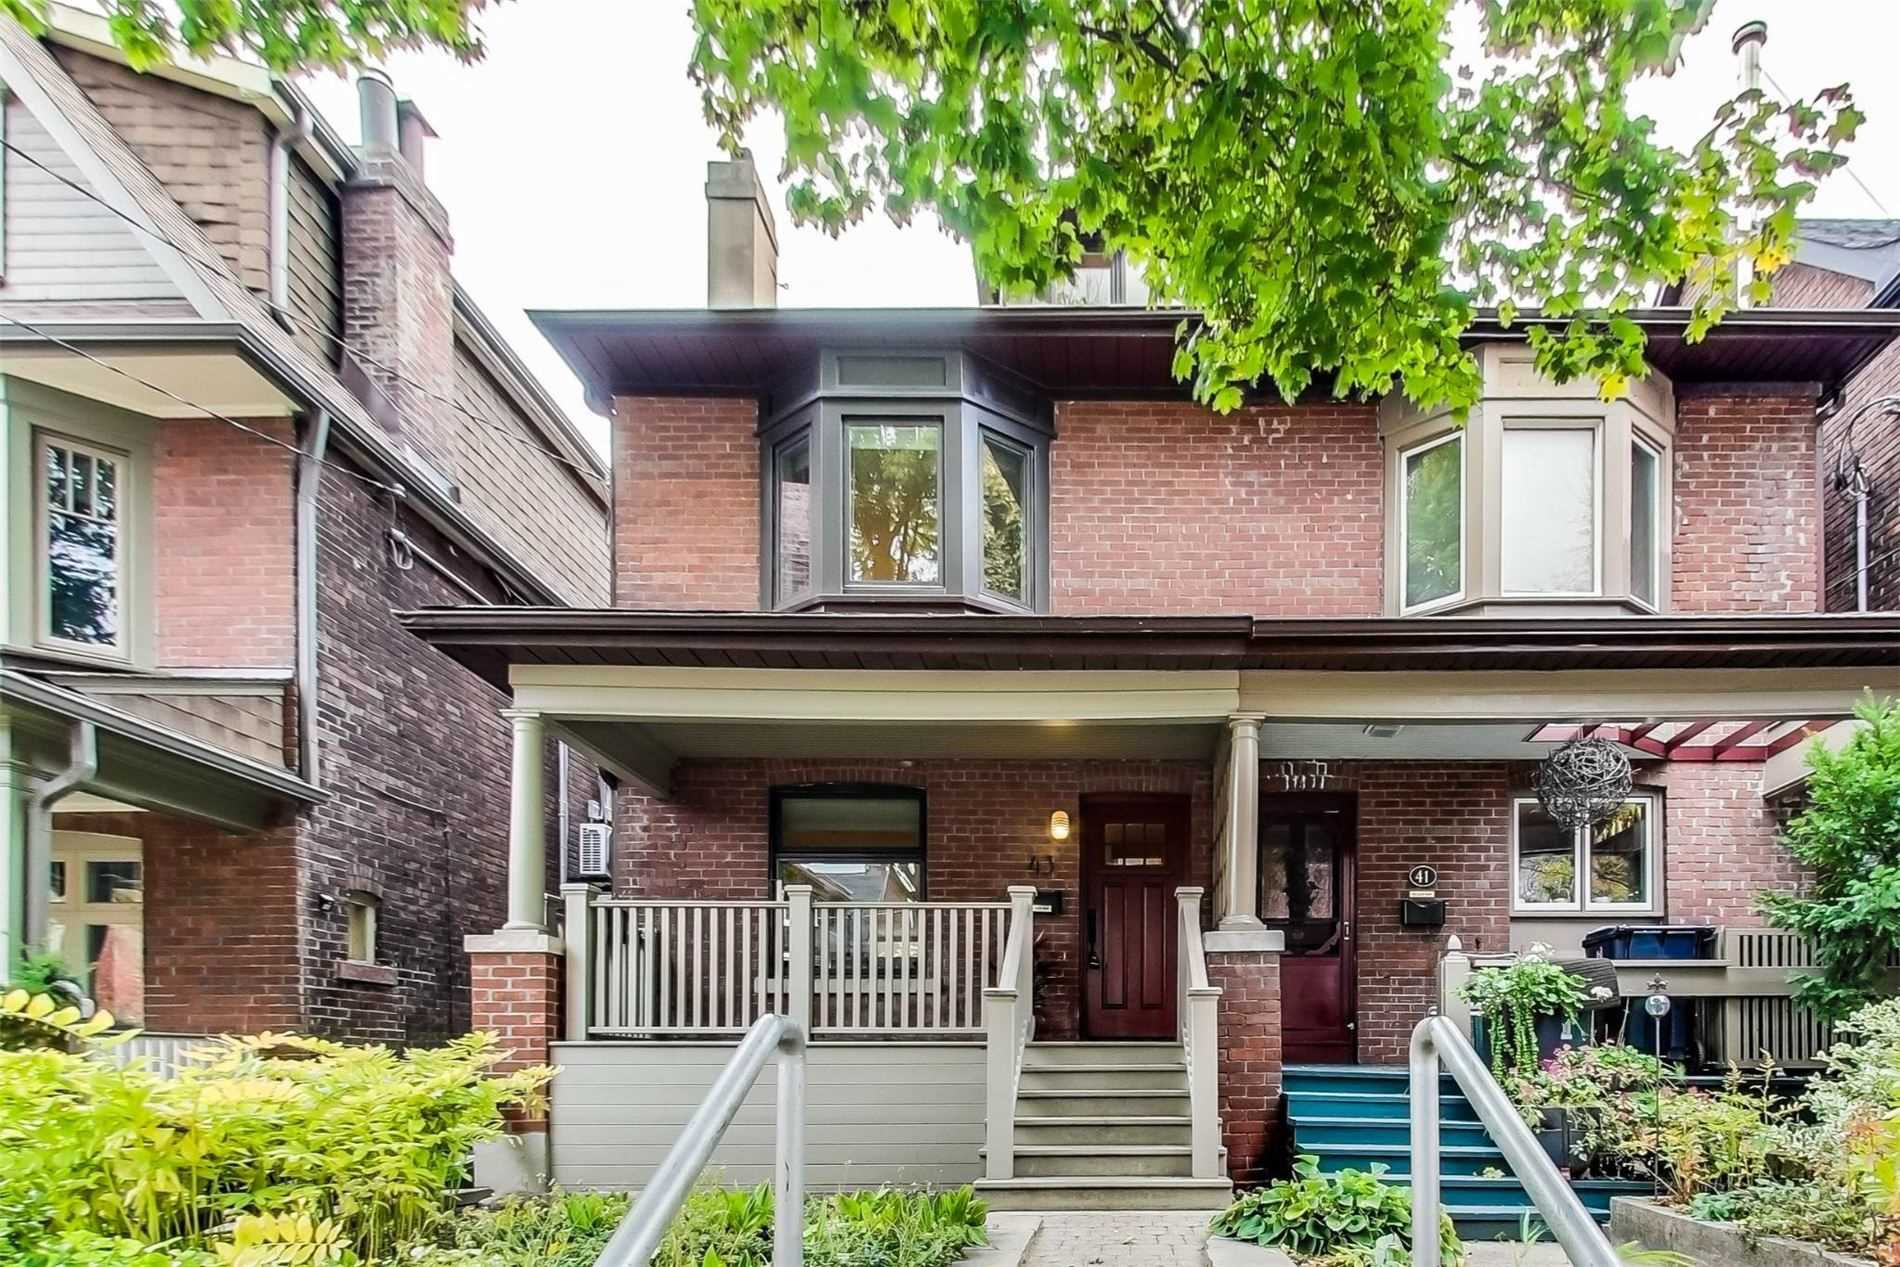 Main Photo: 43 Sparkhall Avenue in Toronto: North Riverdale House (3-Storey) for sale (Toronto E01)  : MLS®# E4976542